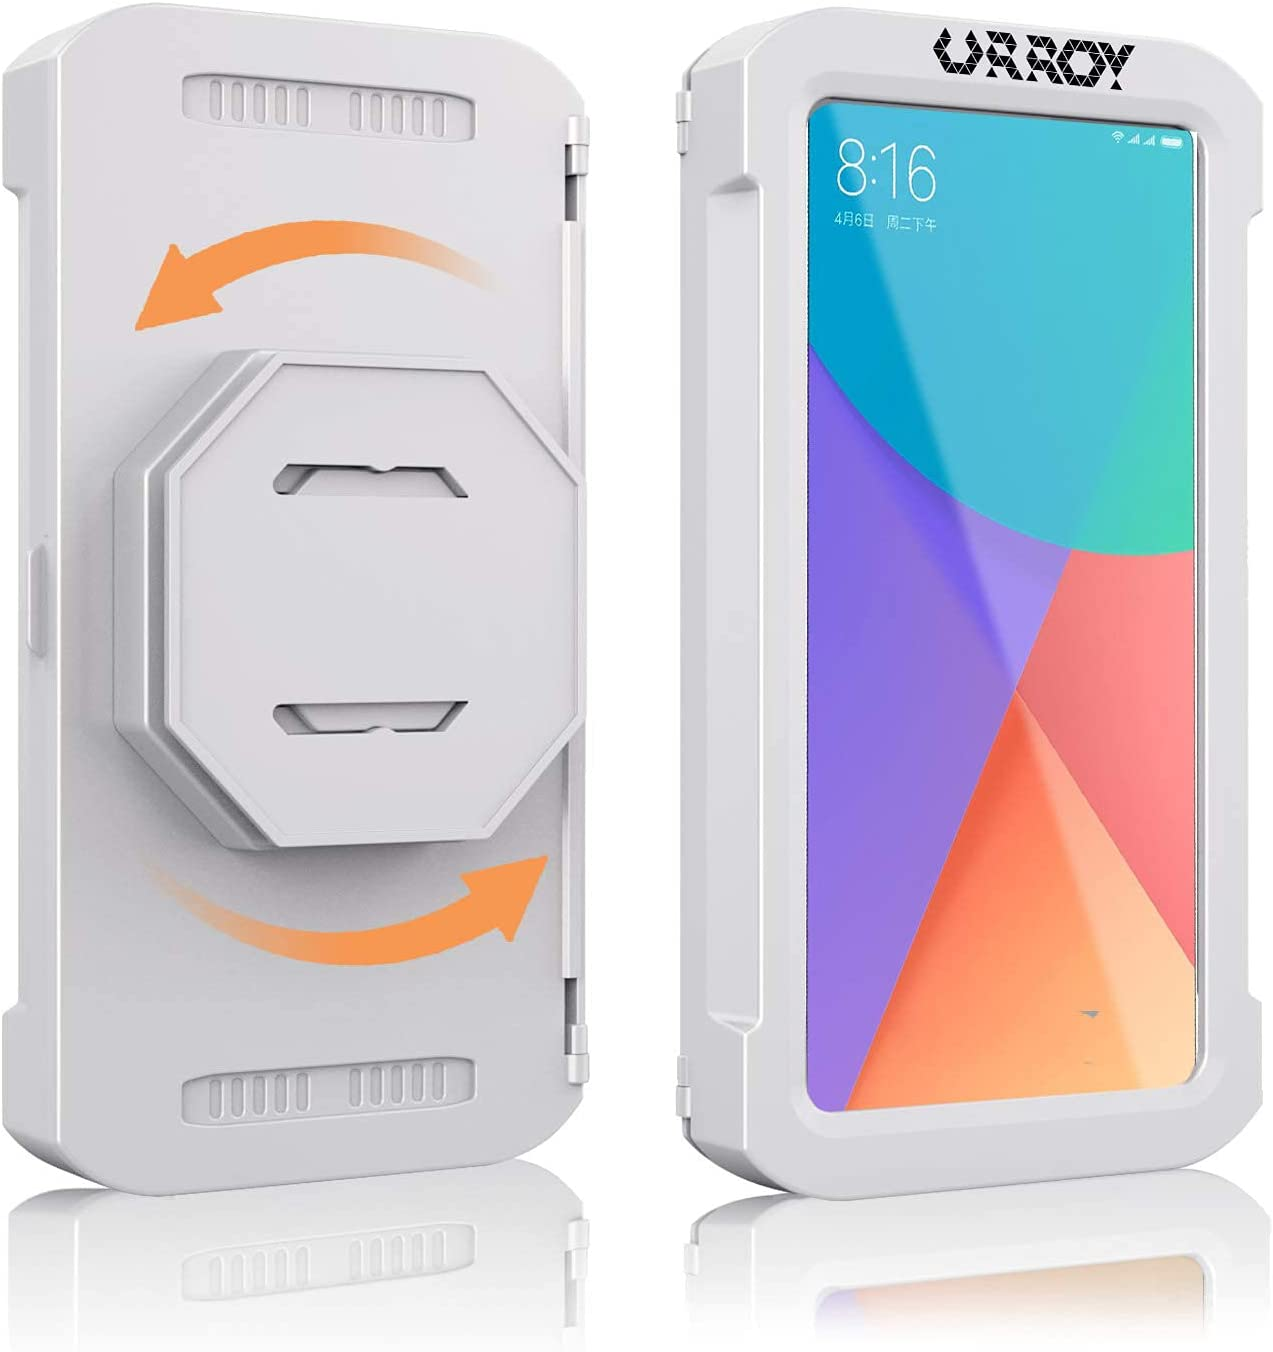 URROY 2021 Ranking TOP14 Upgrade At the price of surprise Shower Phone Holder Water 360° Rotation